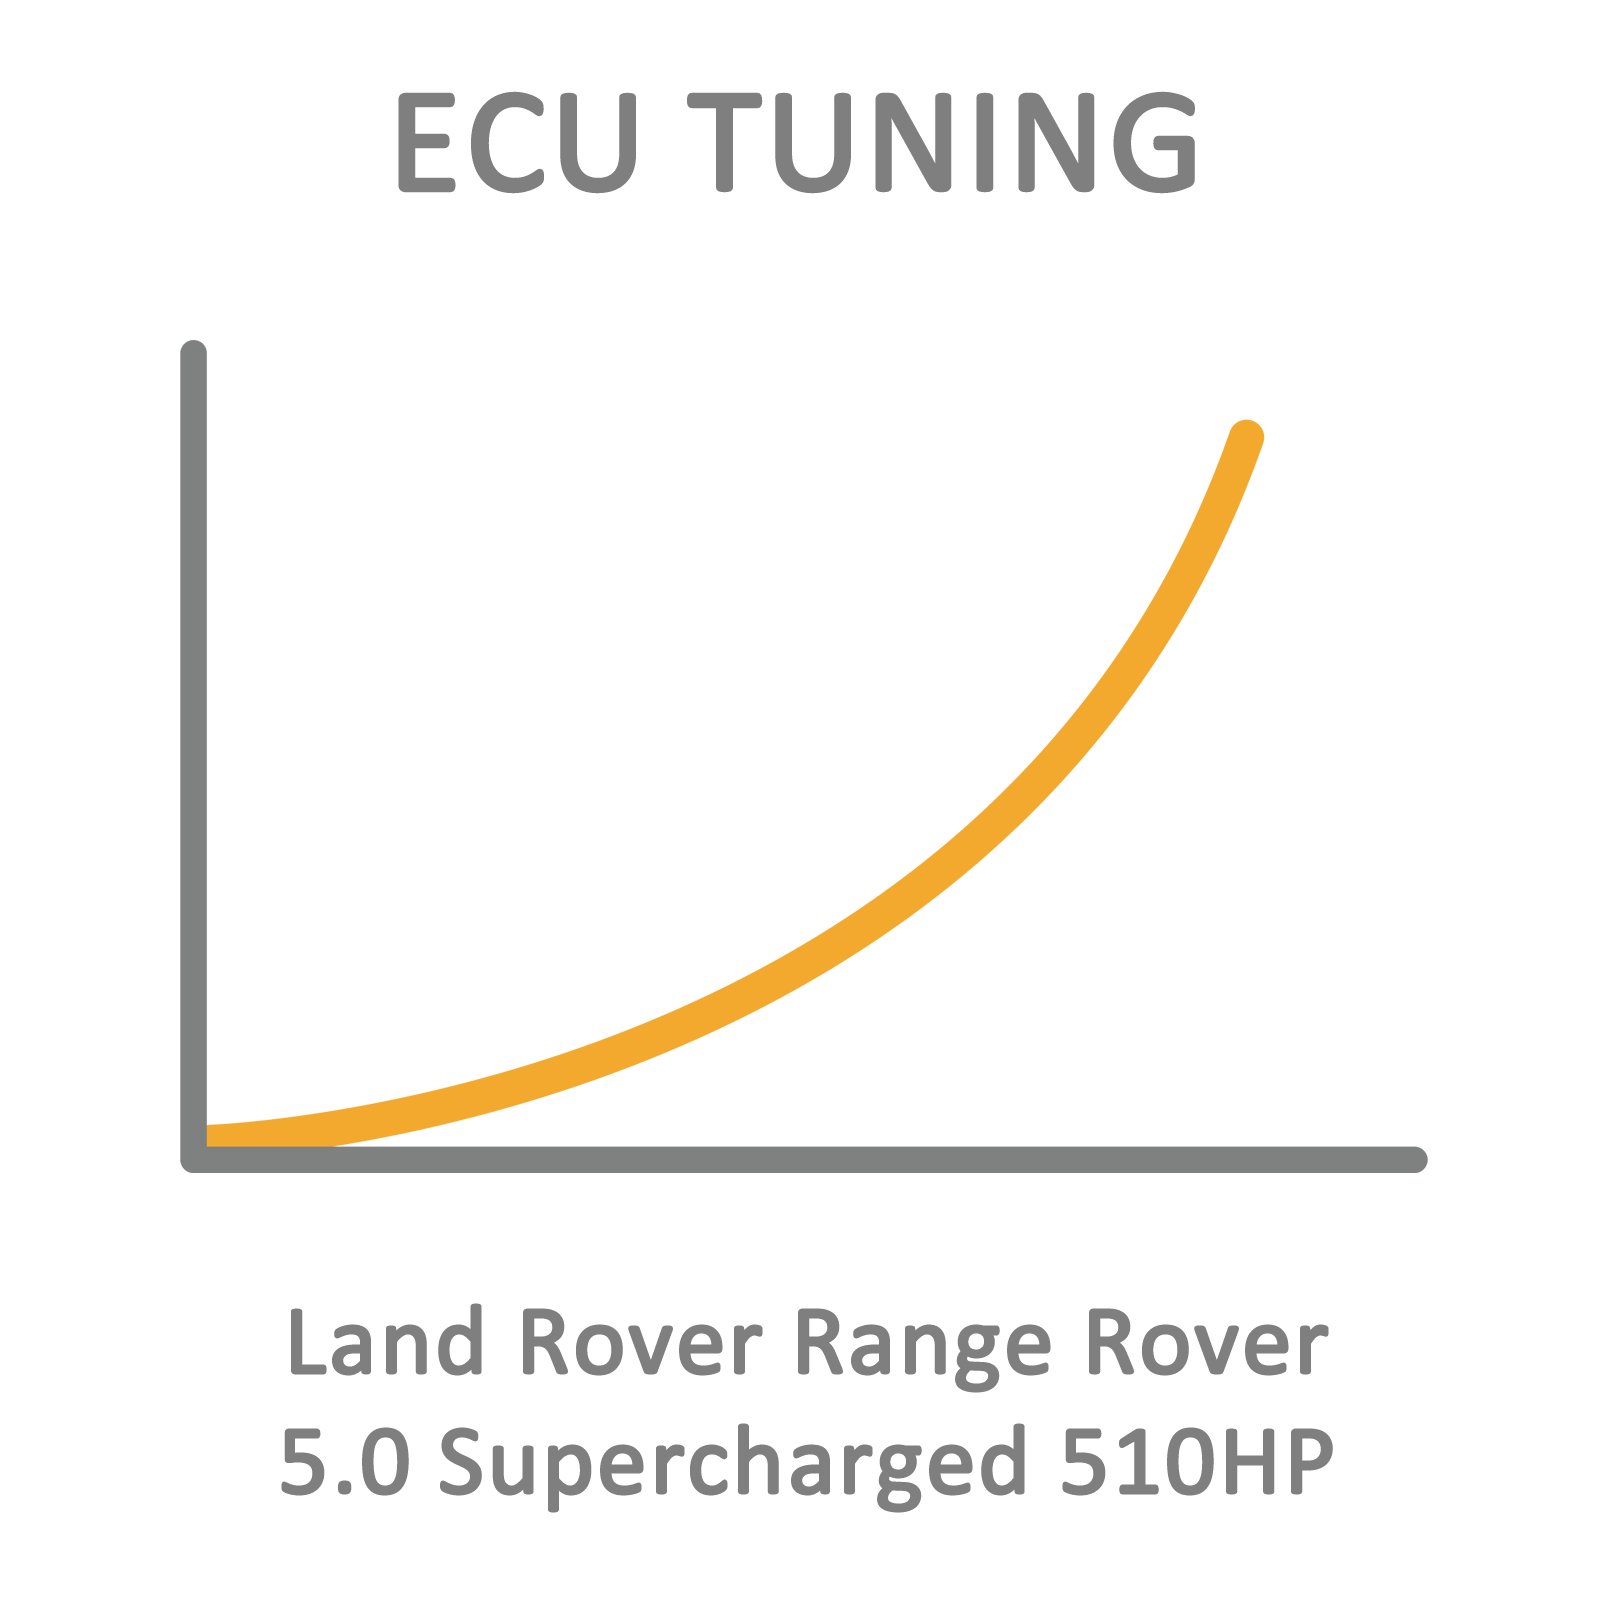 Land Rover Range Rover 5.0 Supercharged 510HP ECU Tuning